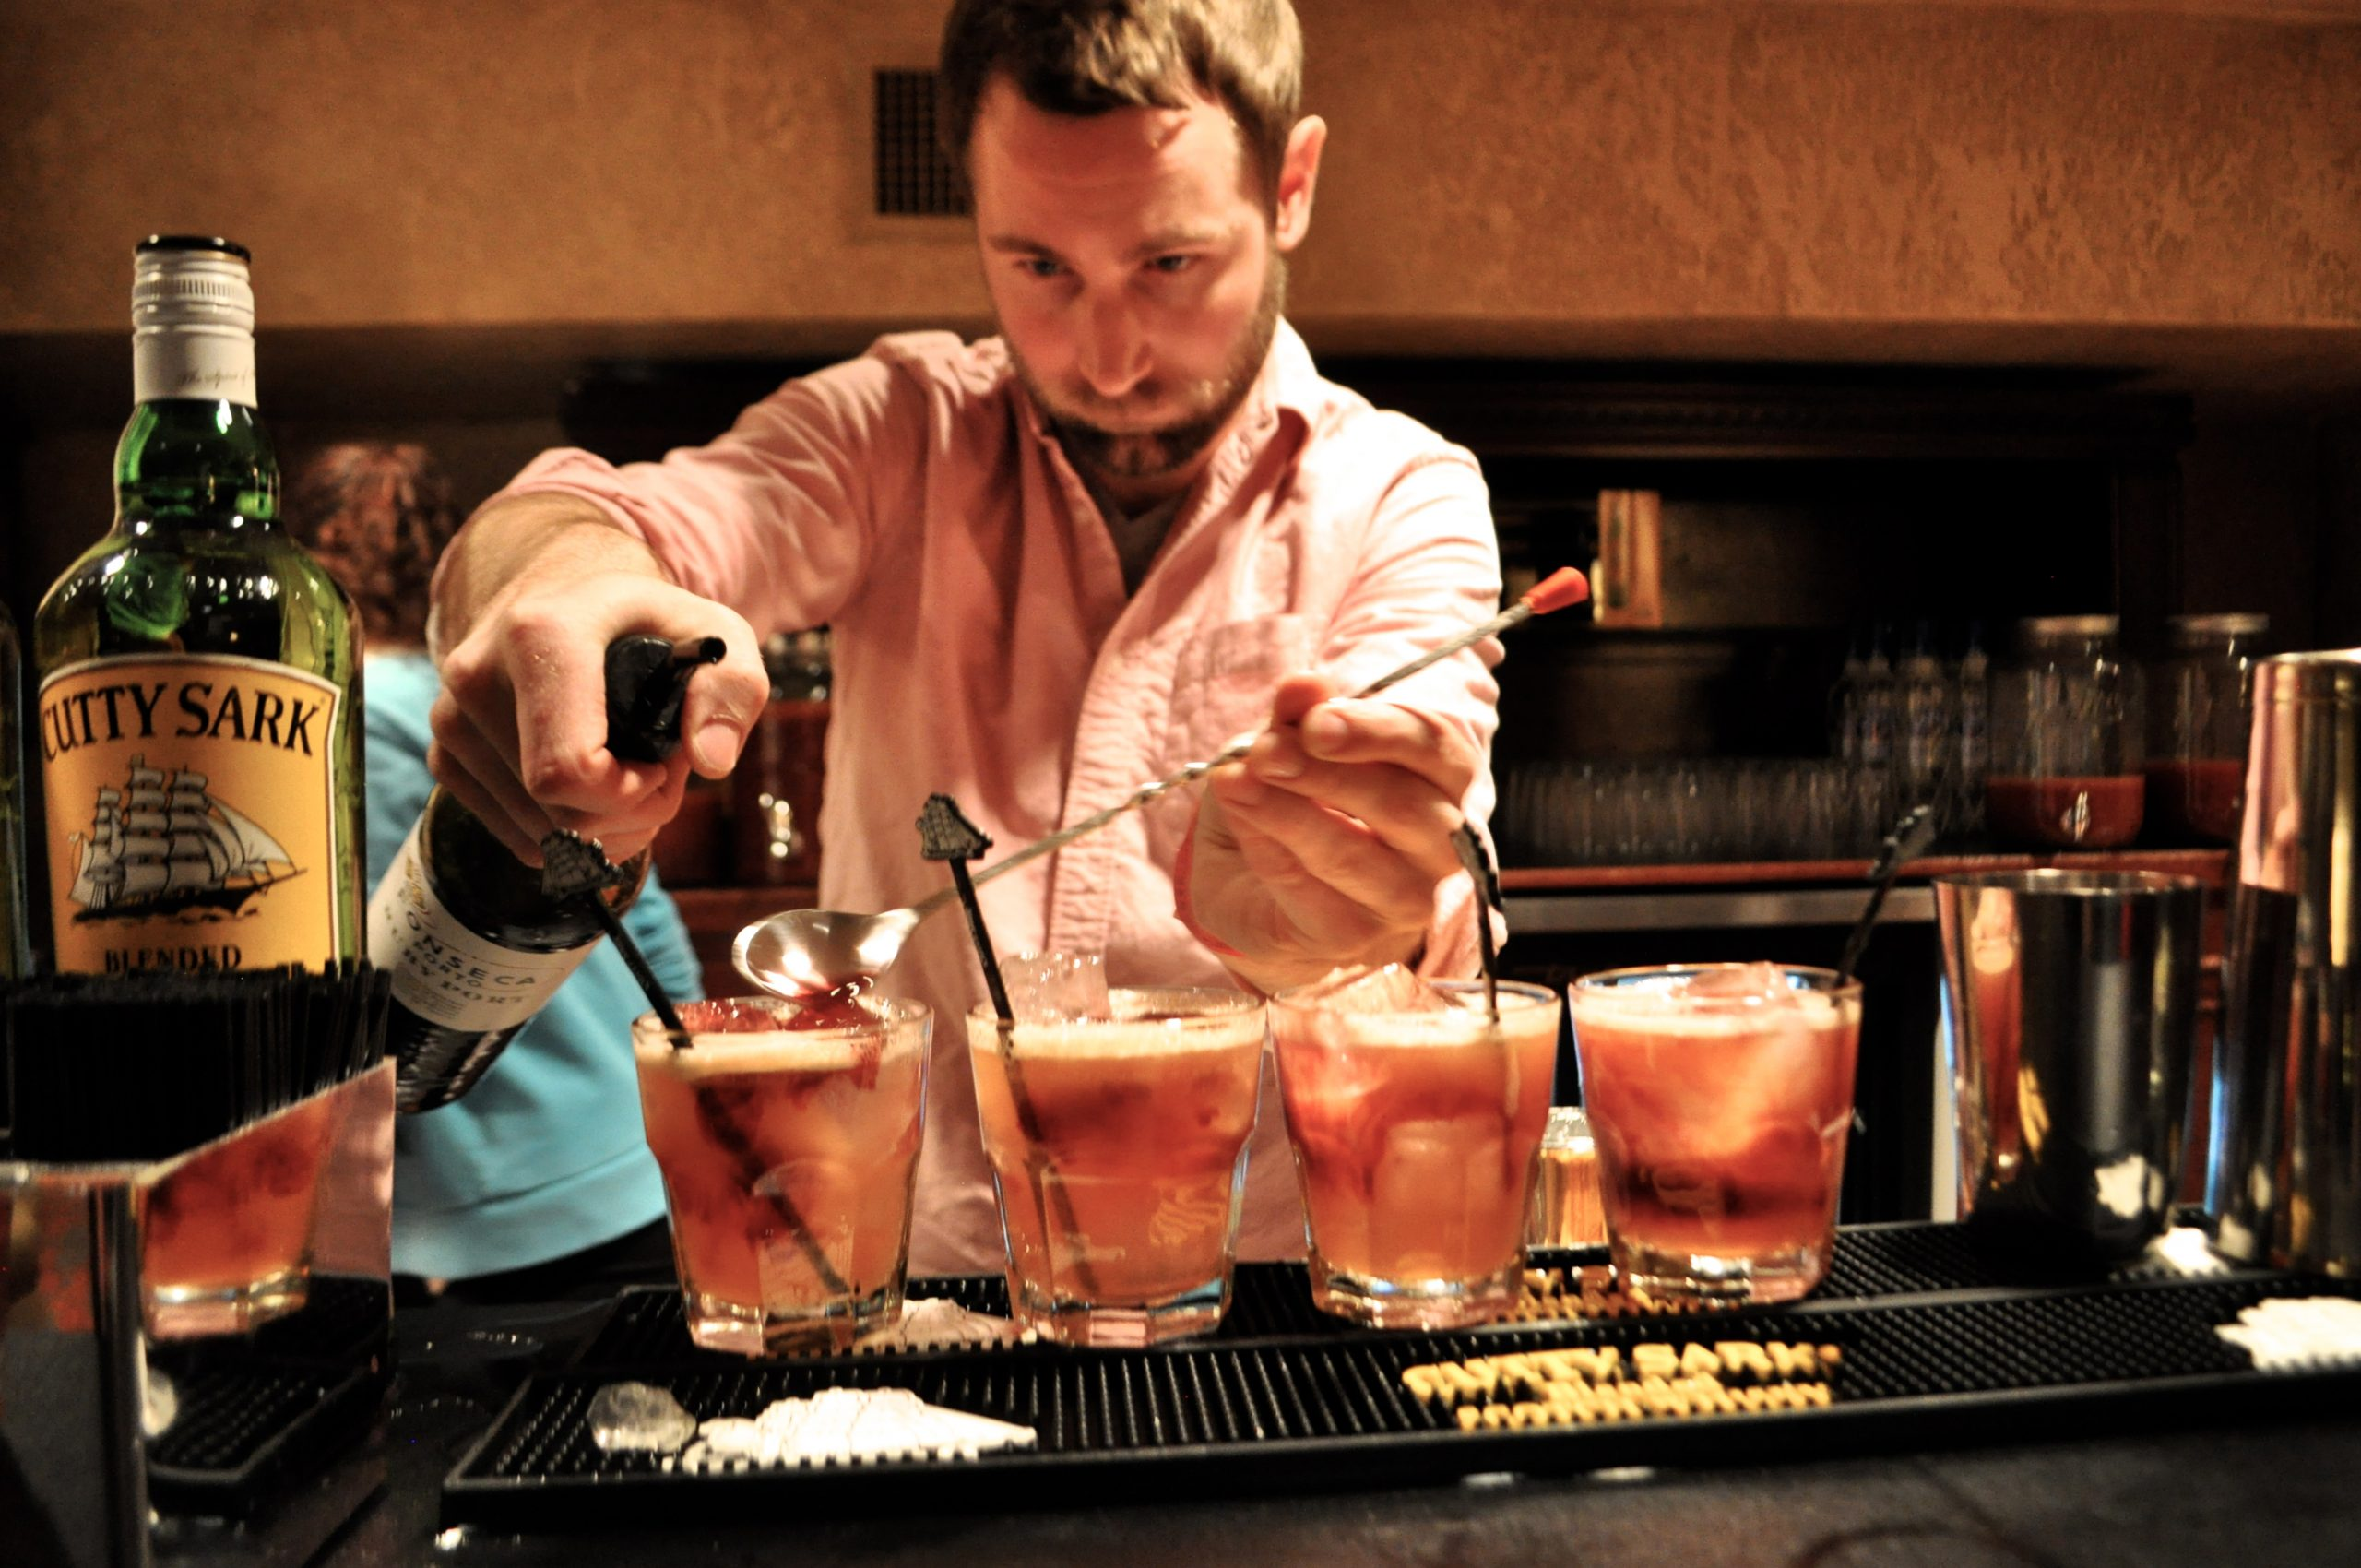 Benji Pocta of Chino Chinatown in Dallas mixes four Cutty Side Scuttles at the opening party for the San Antonio Cocktail Conference. Photo by Iris Dimmick.